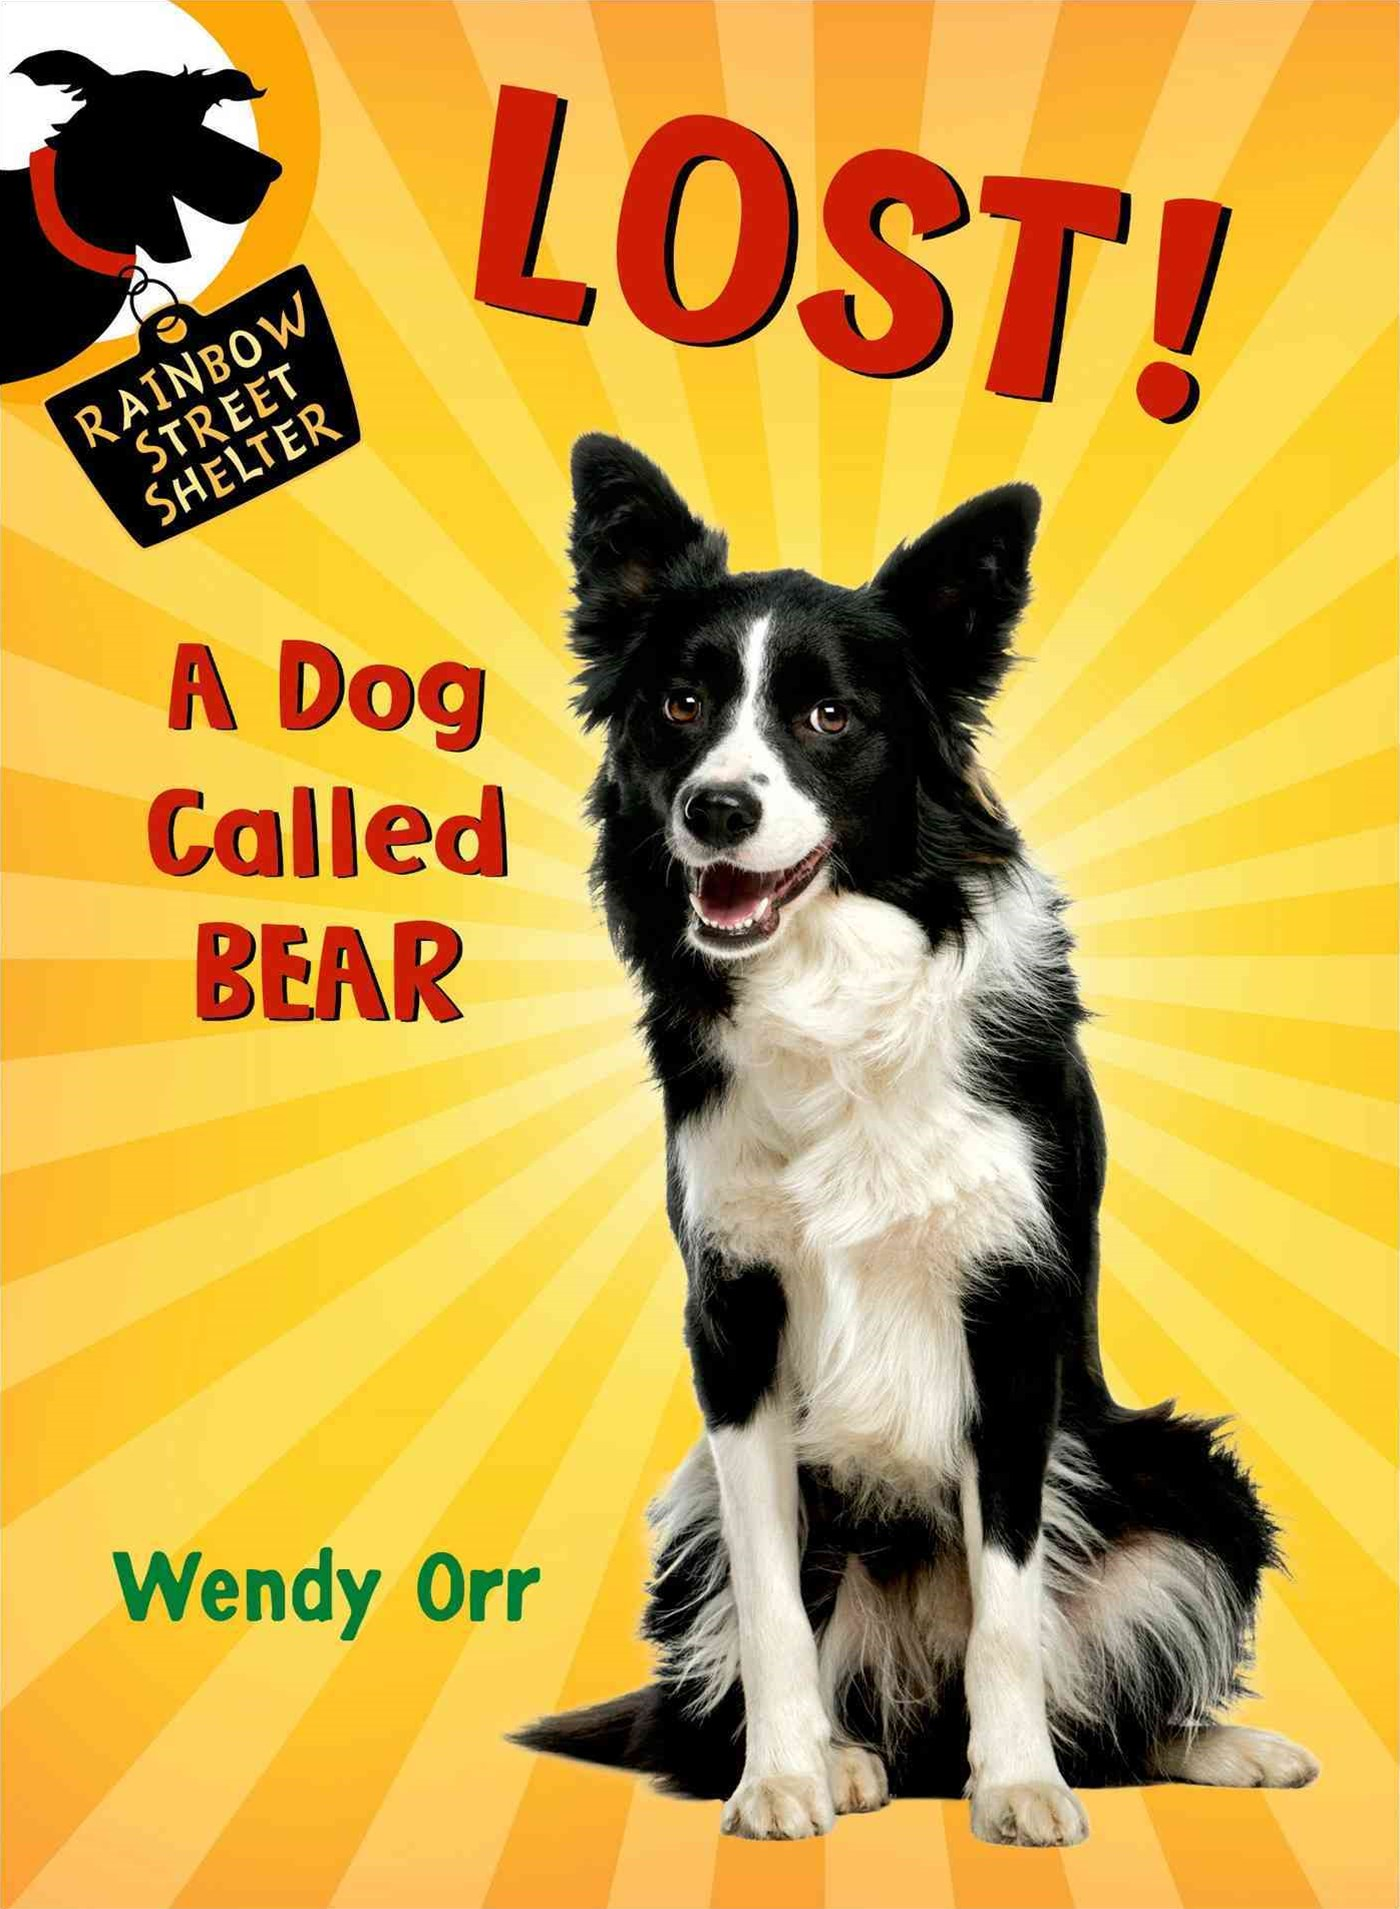 Lost! - A Dog Called Bear